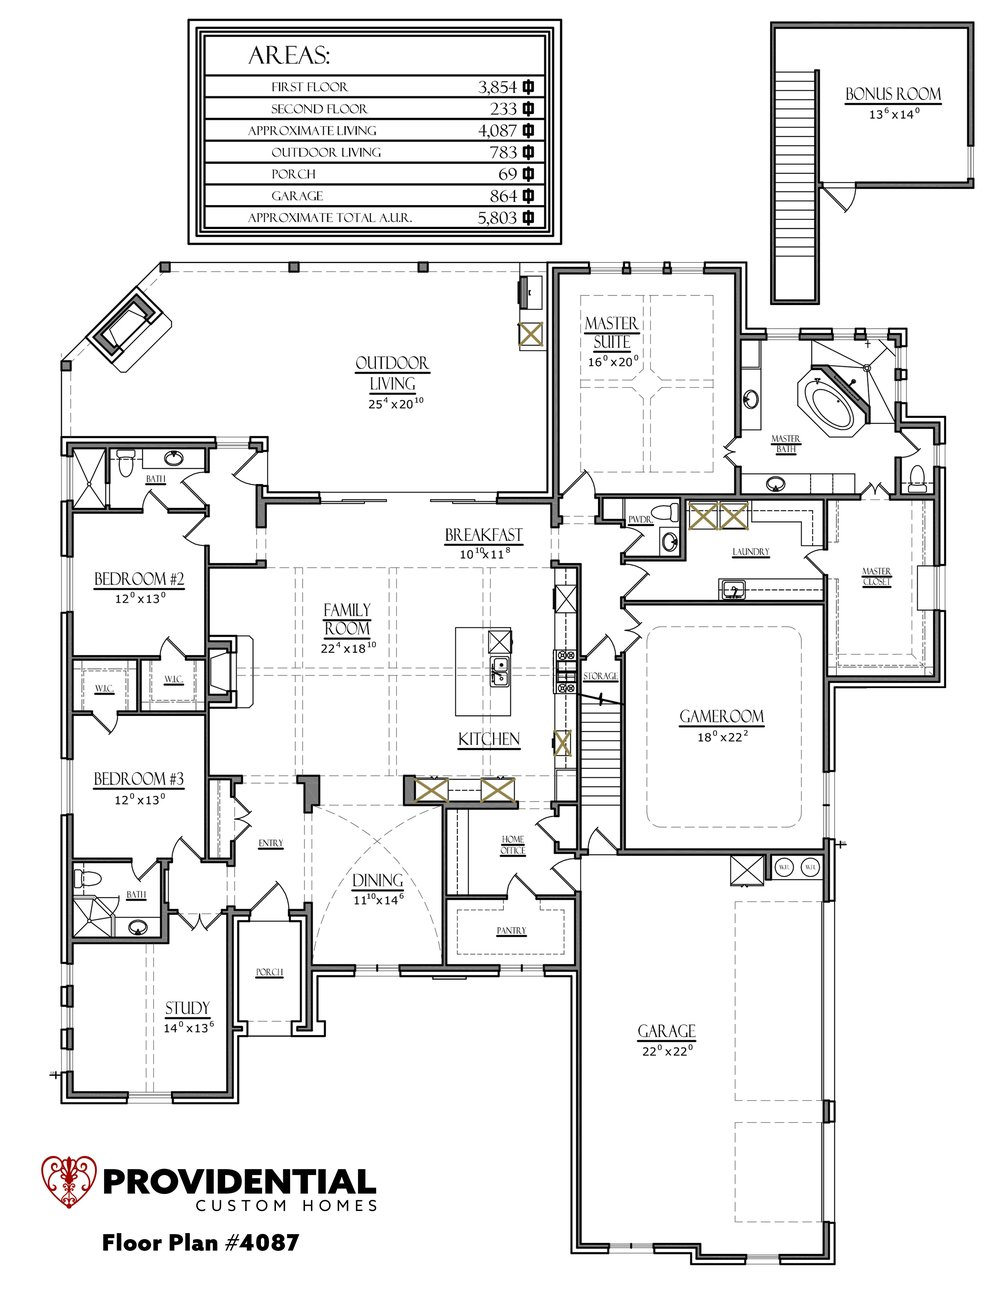 The FLOOR PLAN #4087.jpg